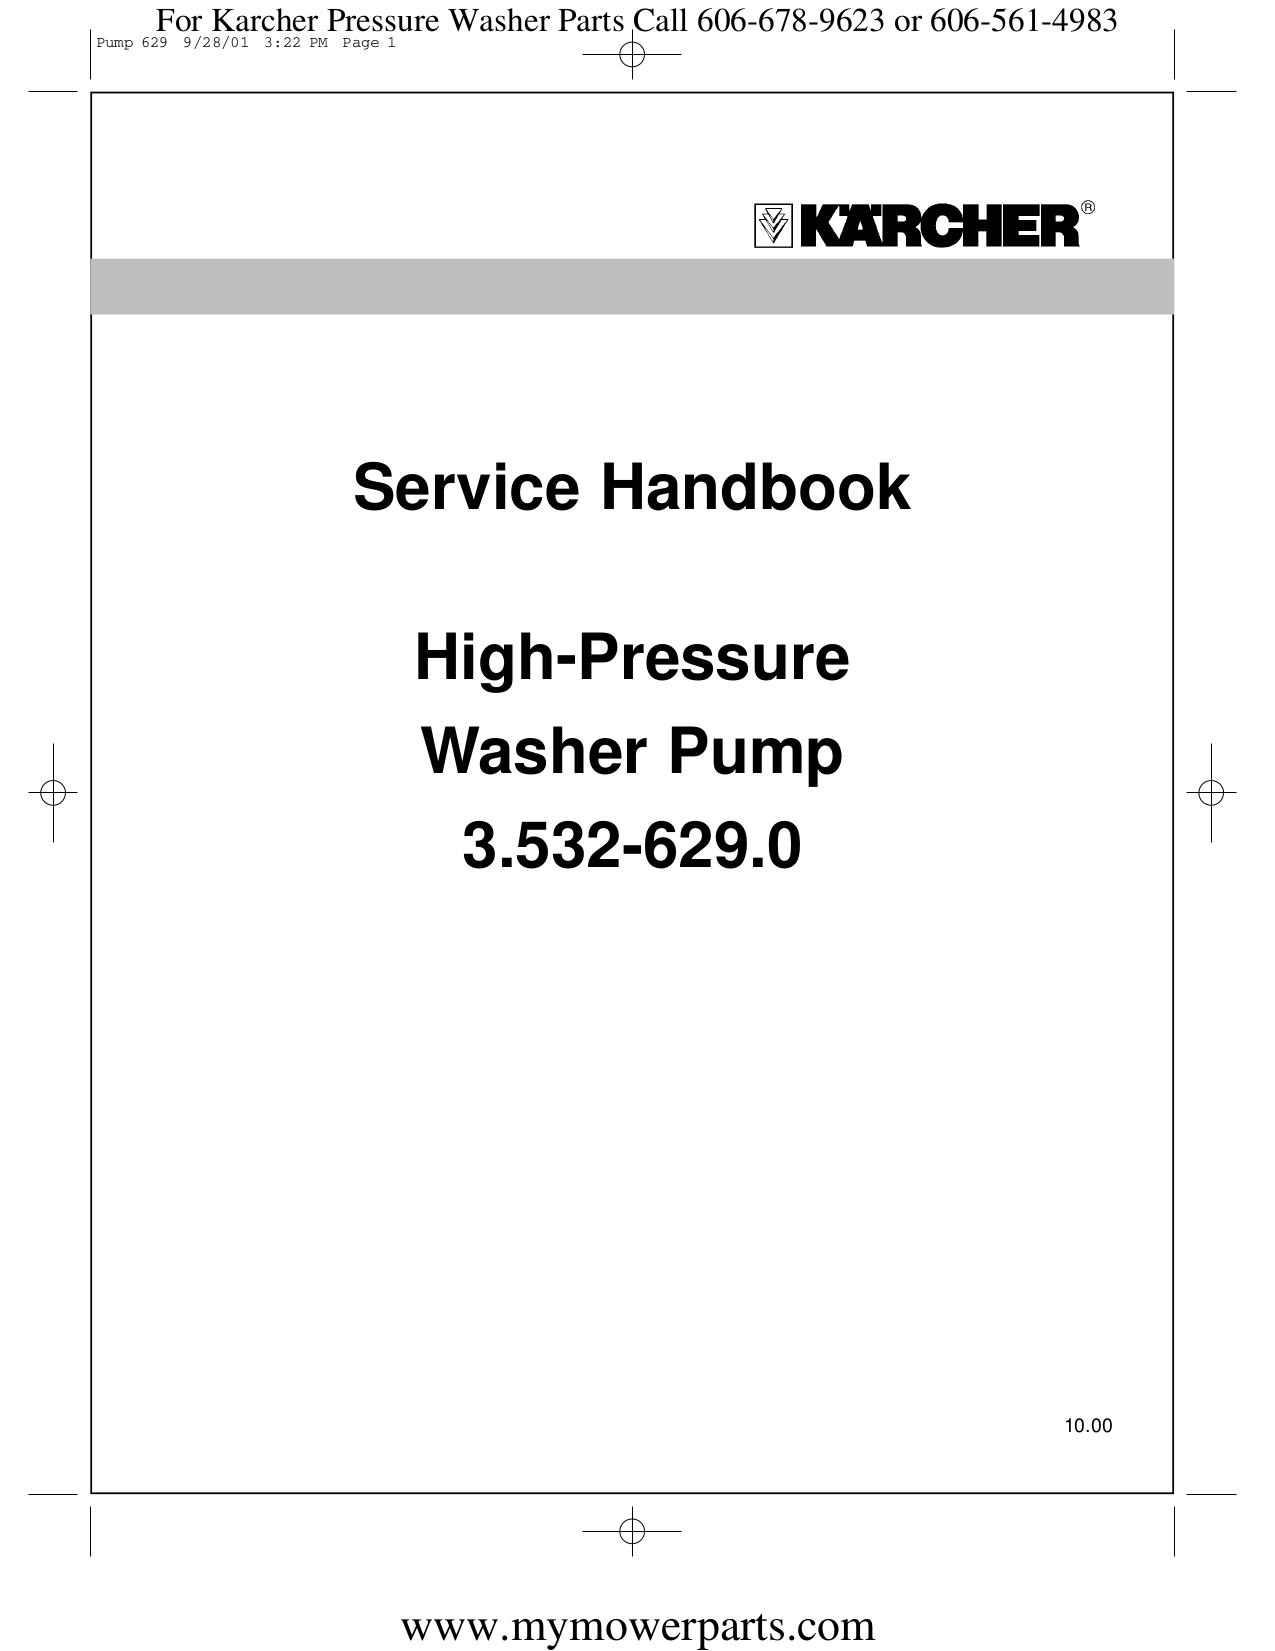 download free pdf for karcher k 2300 g pressure washers other manual rh umlib com Karcher Parts and Service karcher pressure washer troubleshooting manual